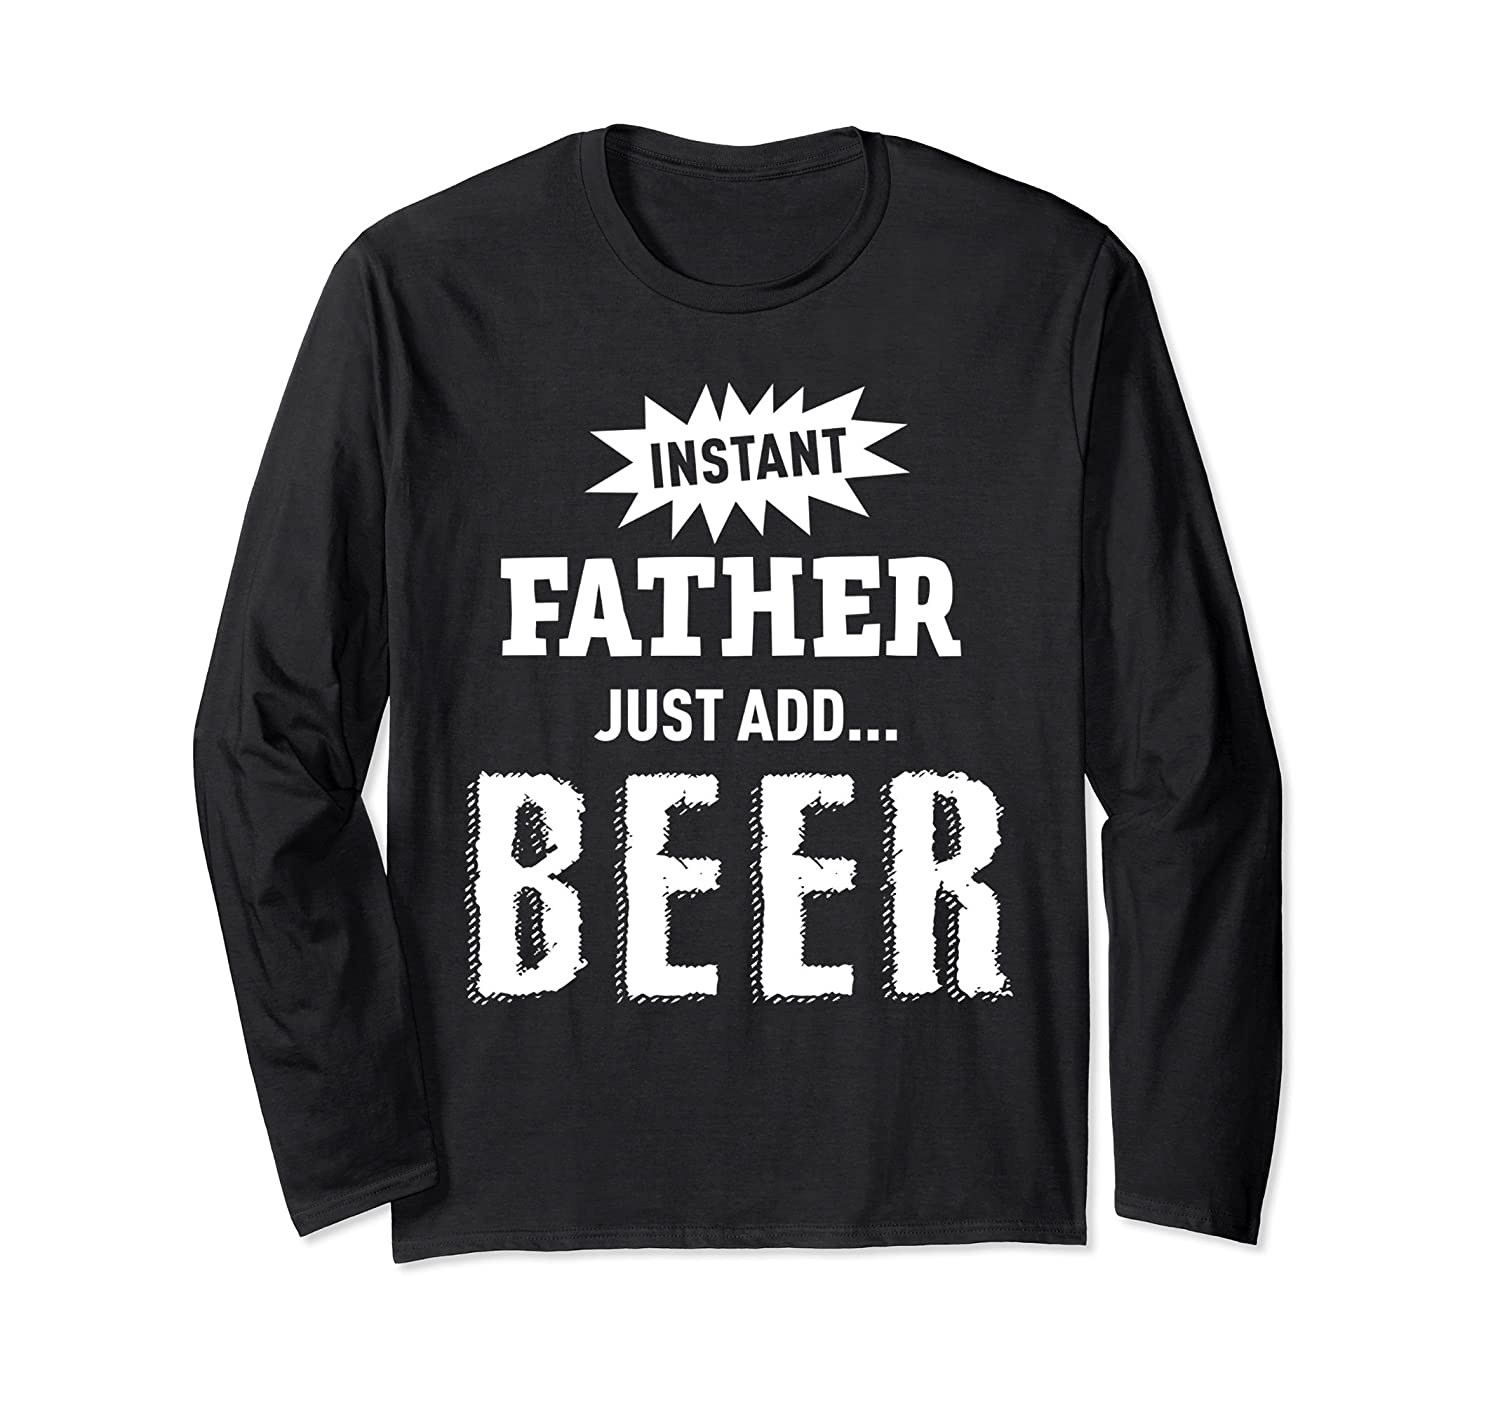 e5d963c2 Instant Father Long Sleeve T-Shirt Funny Drinking Suds Dad-ah my shirt one